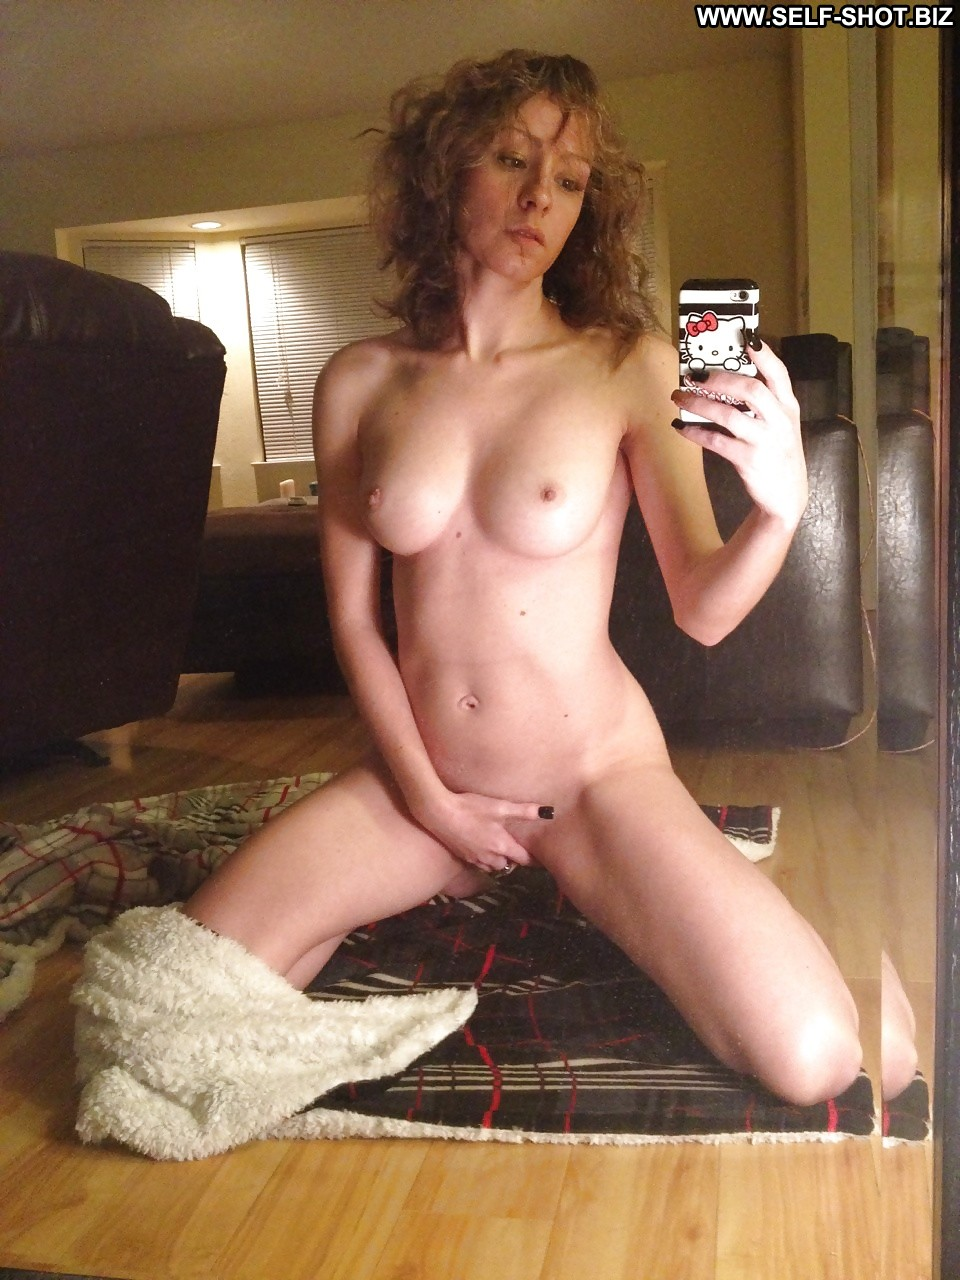 brunette woman on knees nude